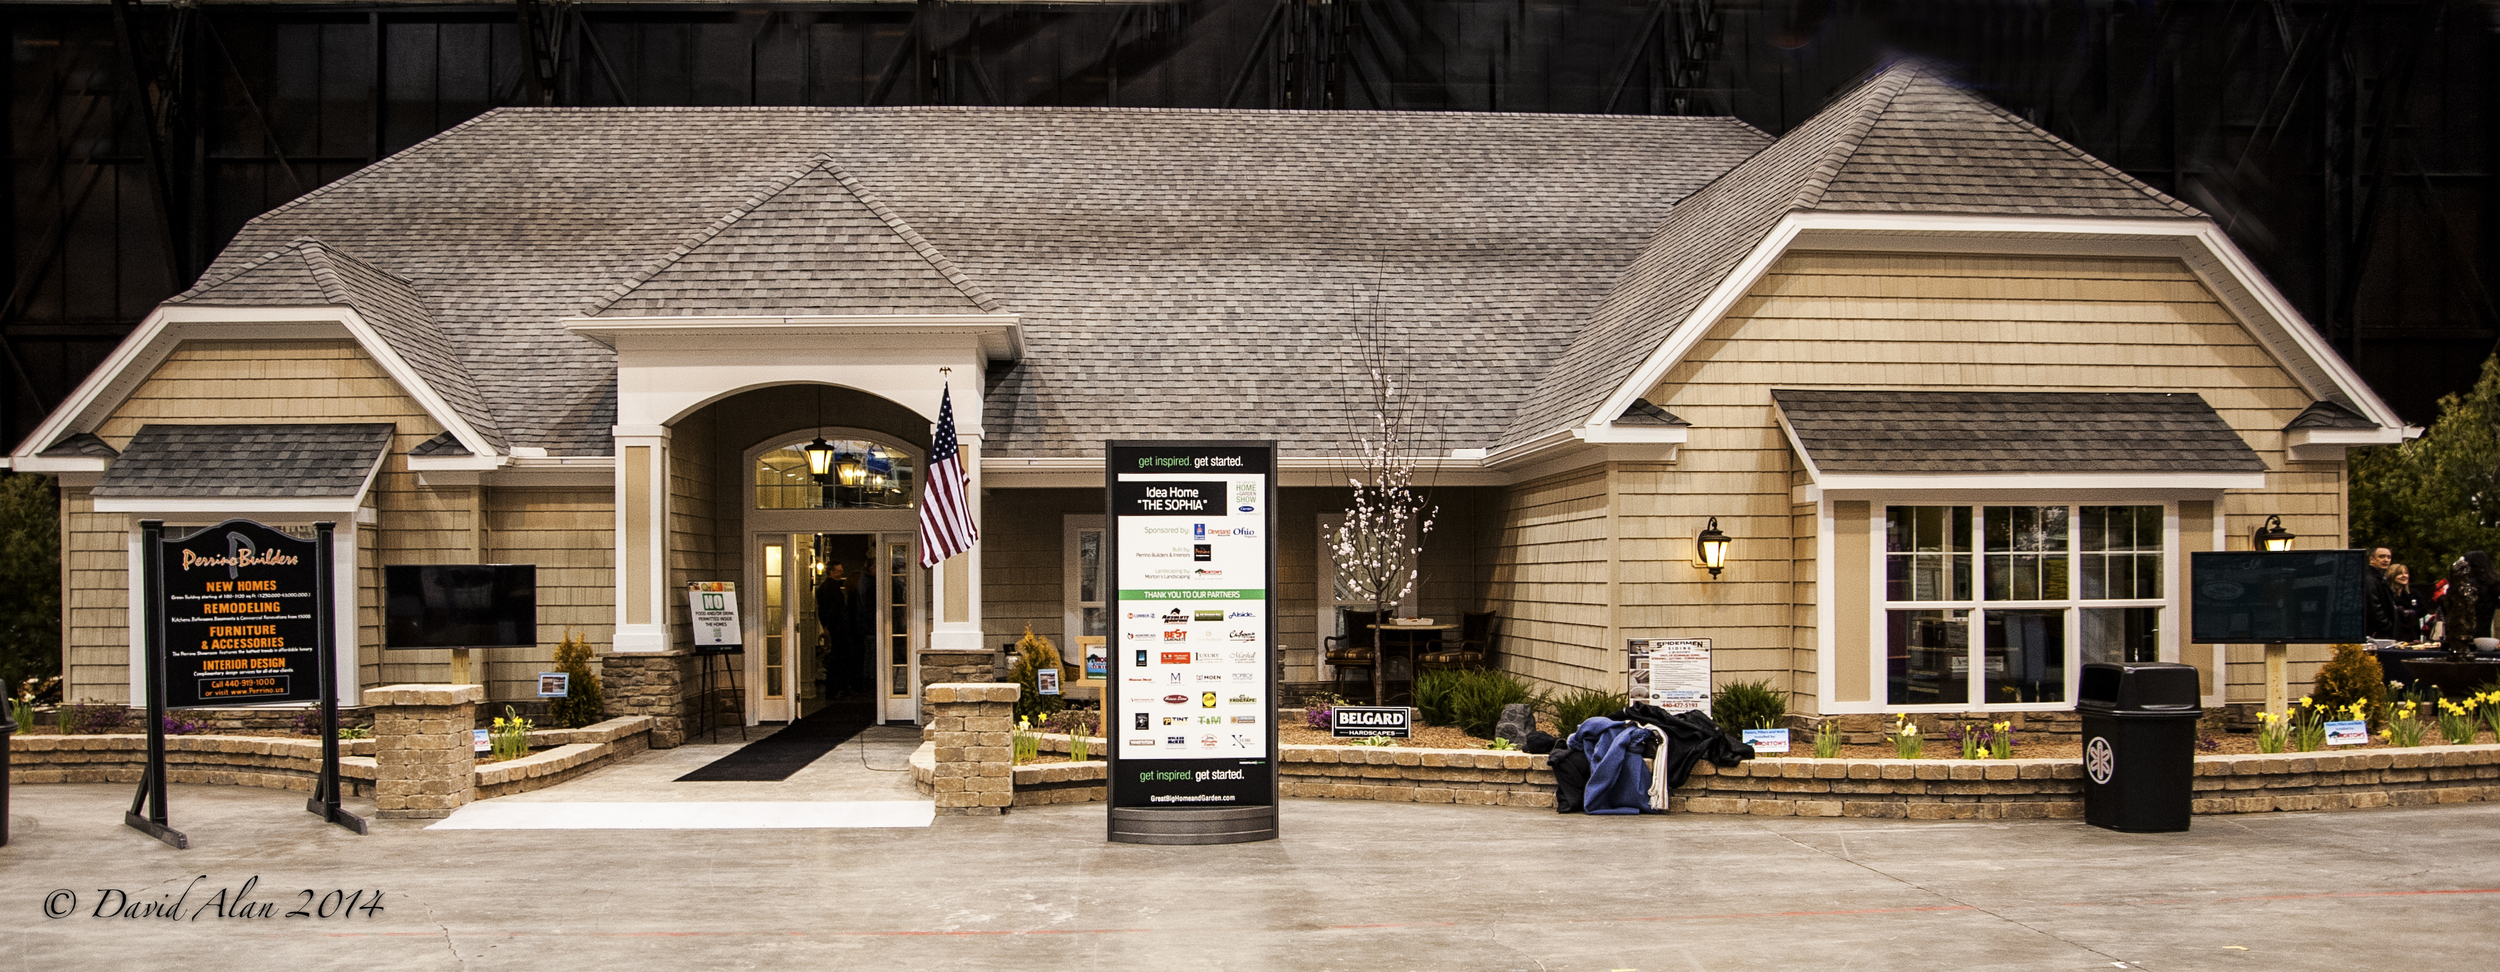 Perrino Idea Home at The Home & Garden Show